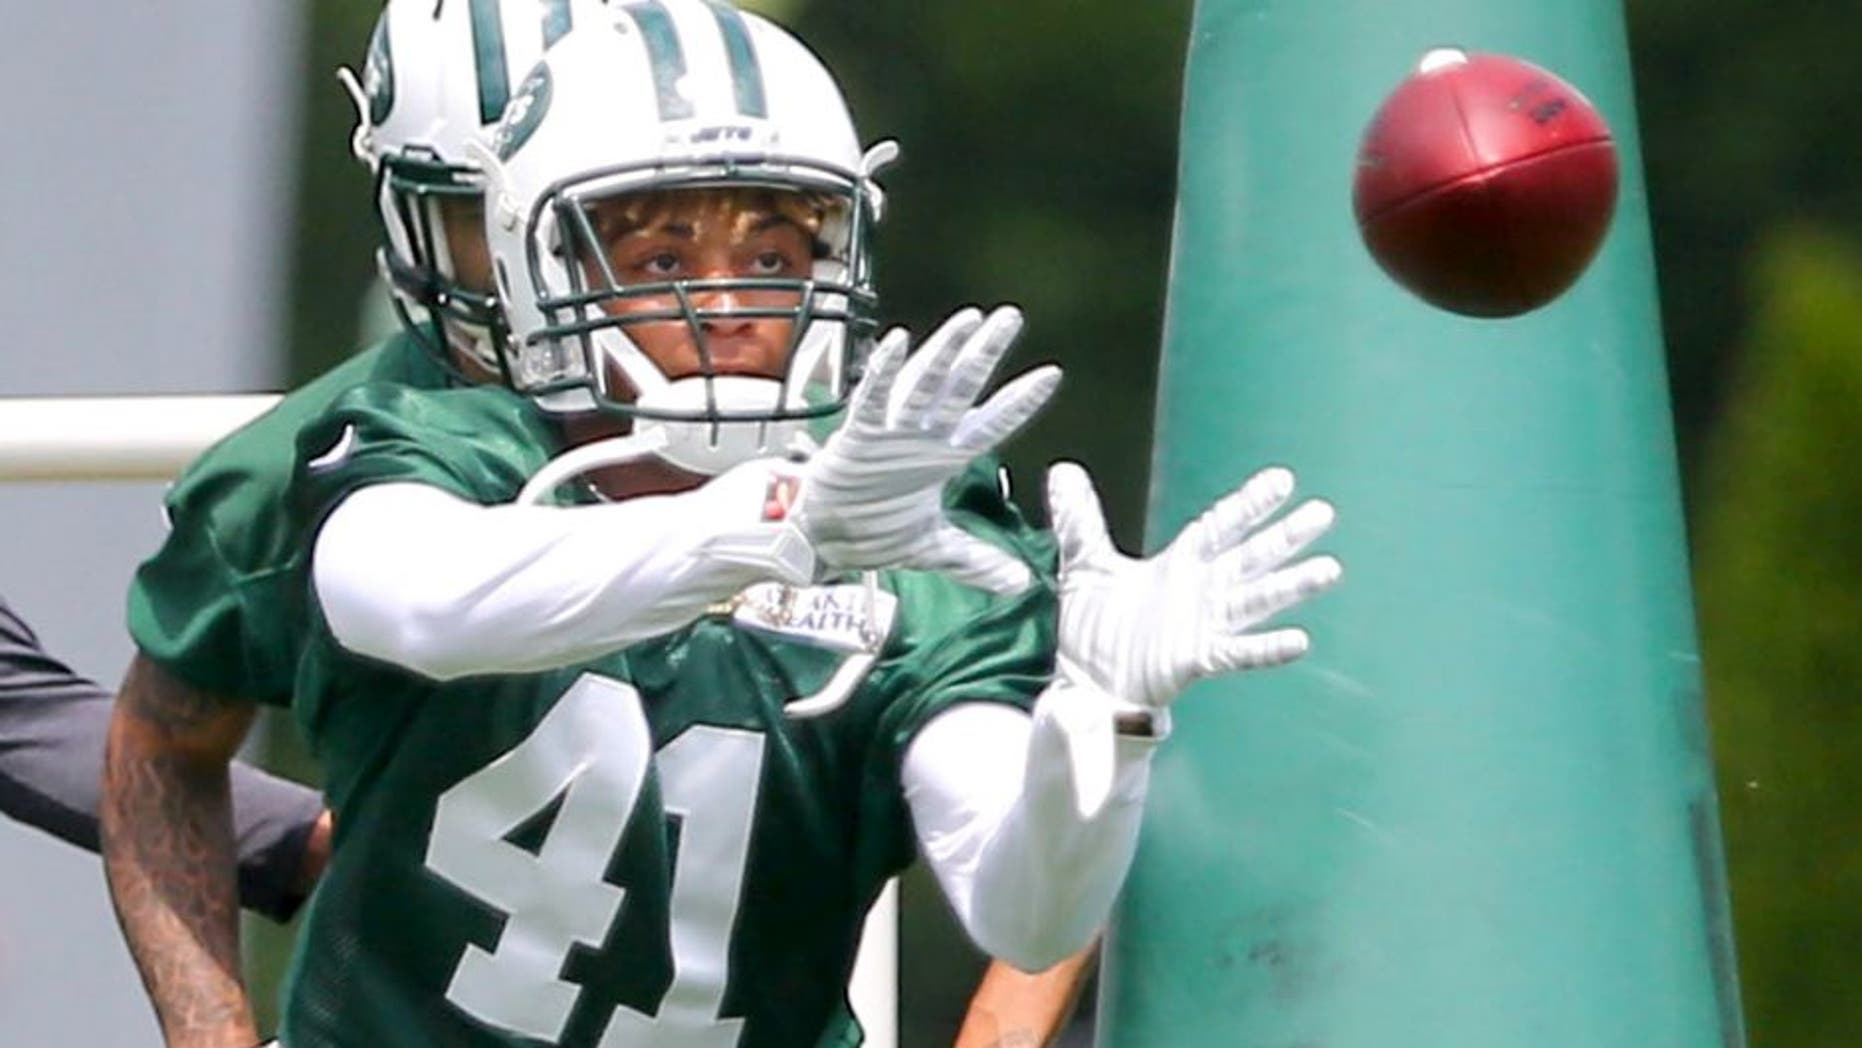 Jun 9, 2015; Florham Park, NJ, USA; New York Jets cornerback Buster Skrine (41) catches a pass during New York Jets minicamp at Atlantic Health Jets Training Center. Mandatory Credit: Ed Mulholland-USA TODAY Sports